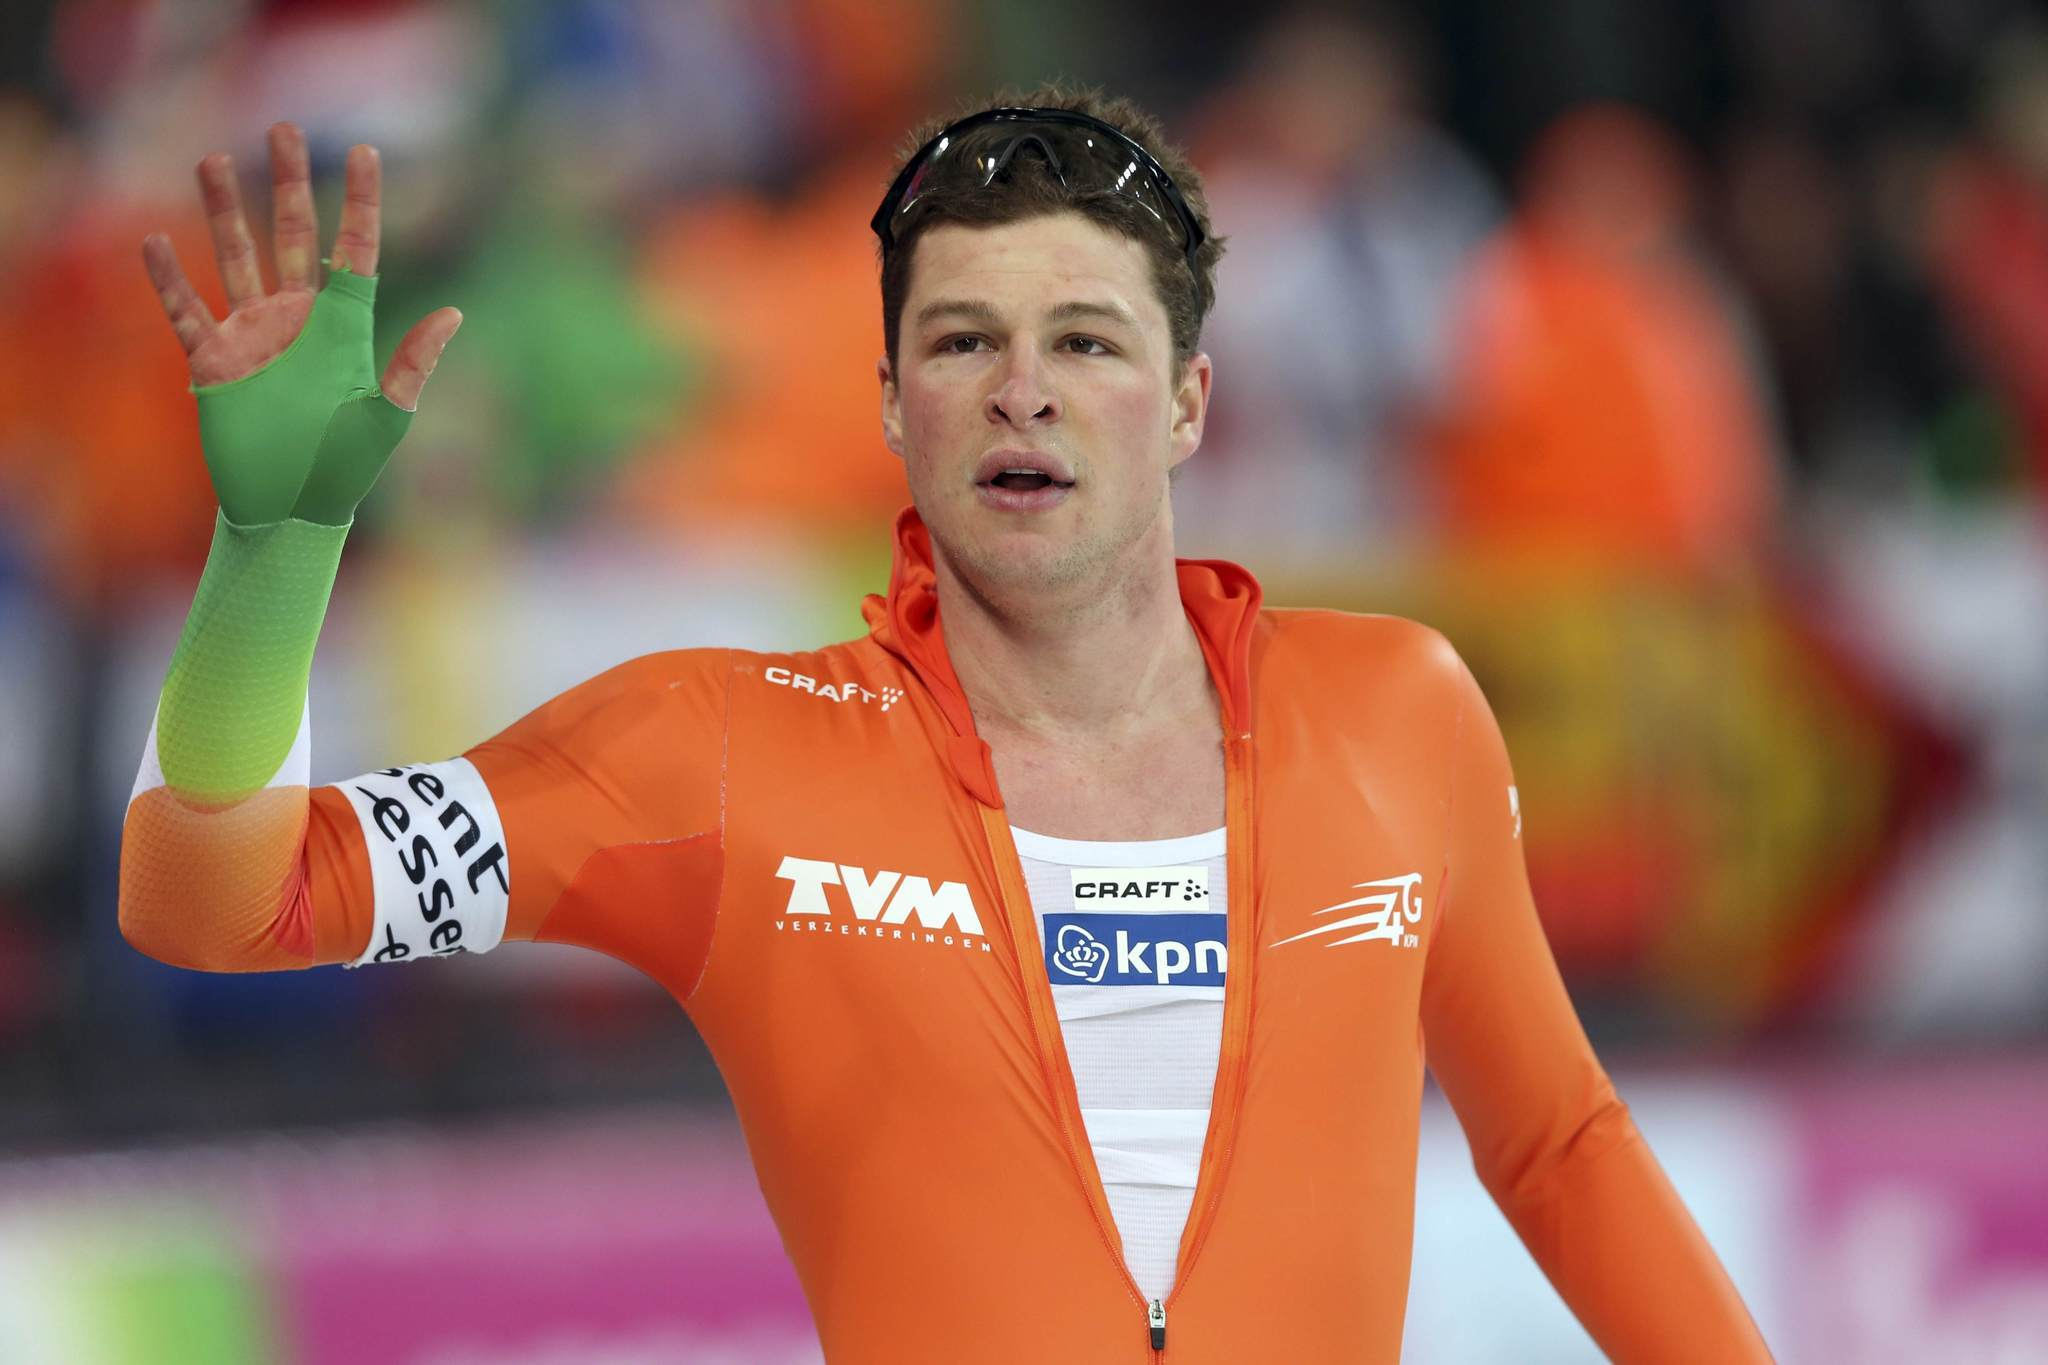 Sven Kramer of the Netherlands waves to the crowd at the World Speedskating Championships. (Hakon Mosvold Larsen/Reuters Photo)